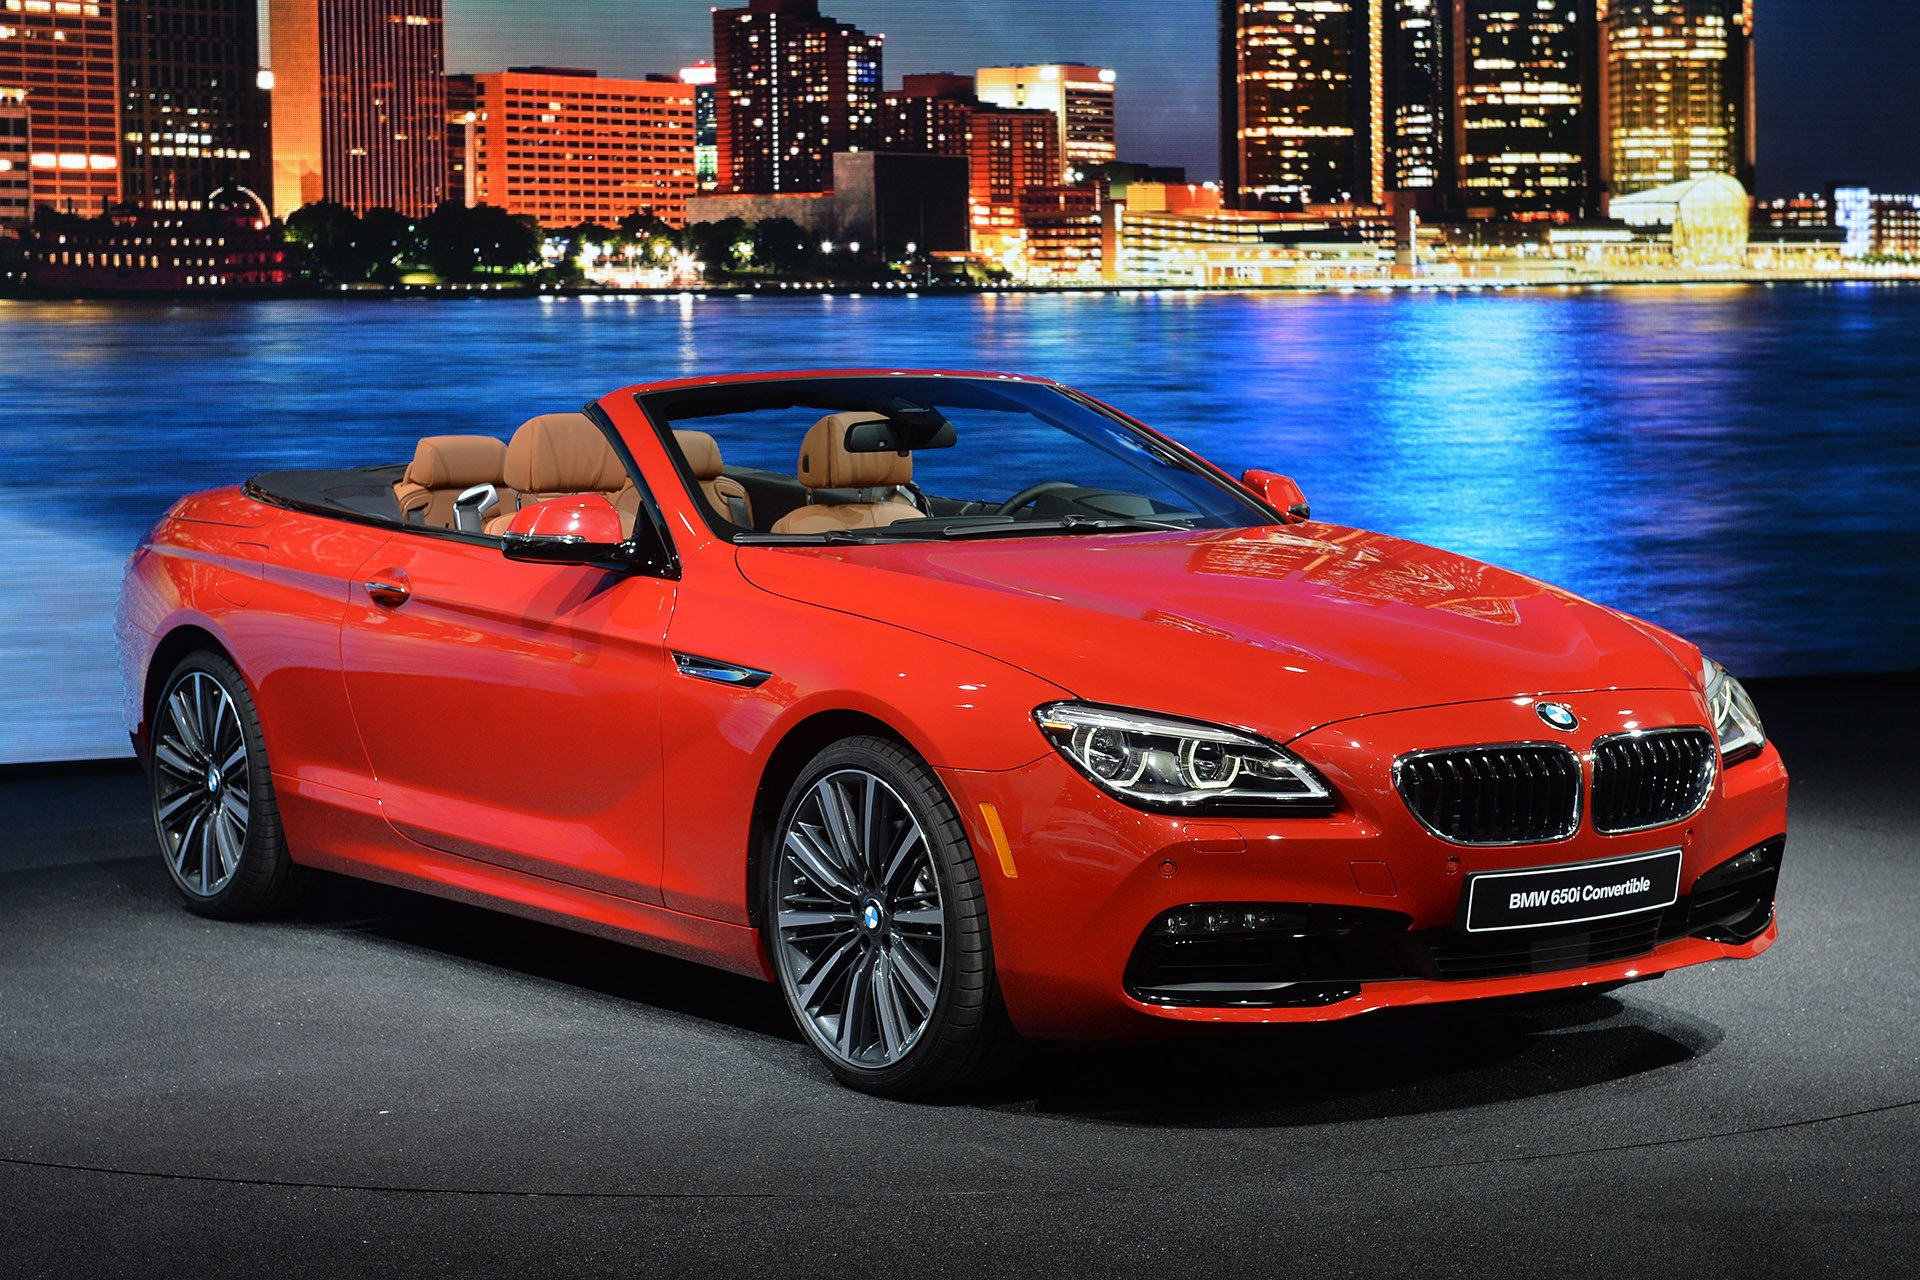 BMW 6 Series sports convertible 2015 650i cars wallpaper